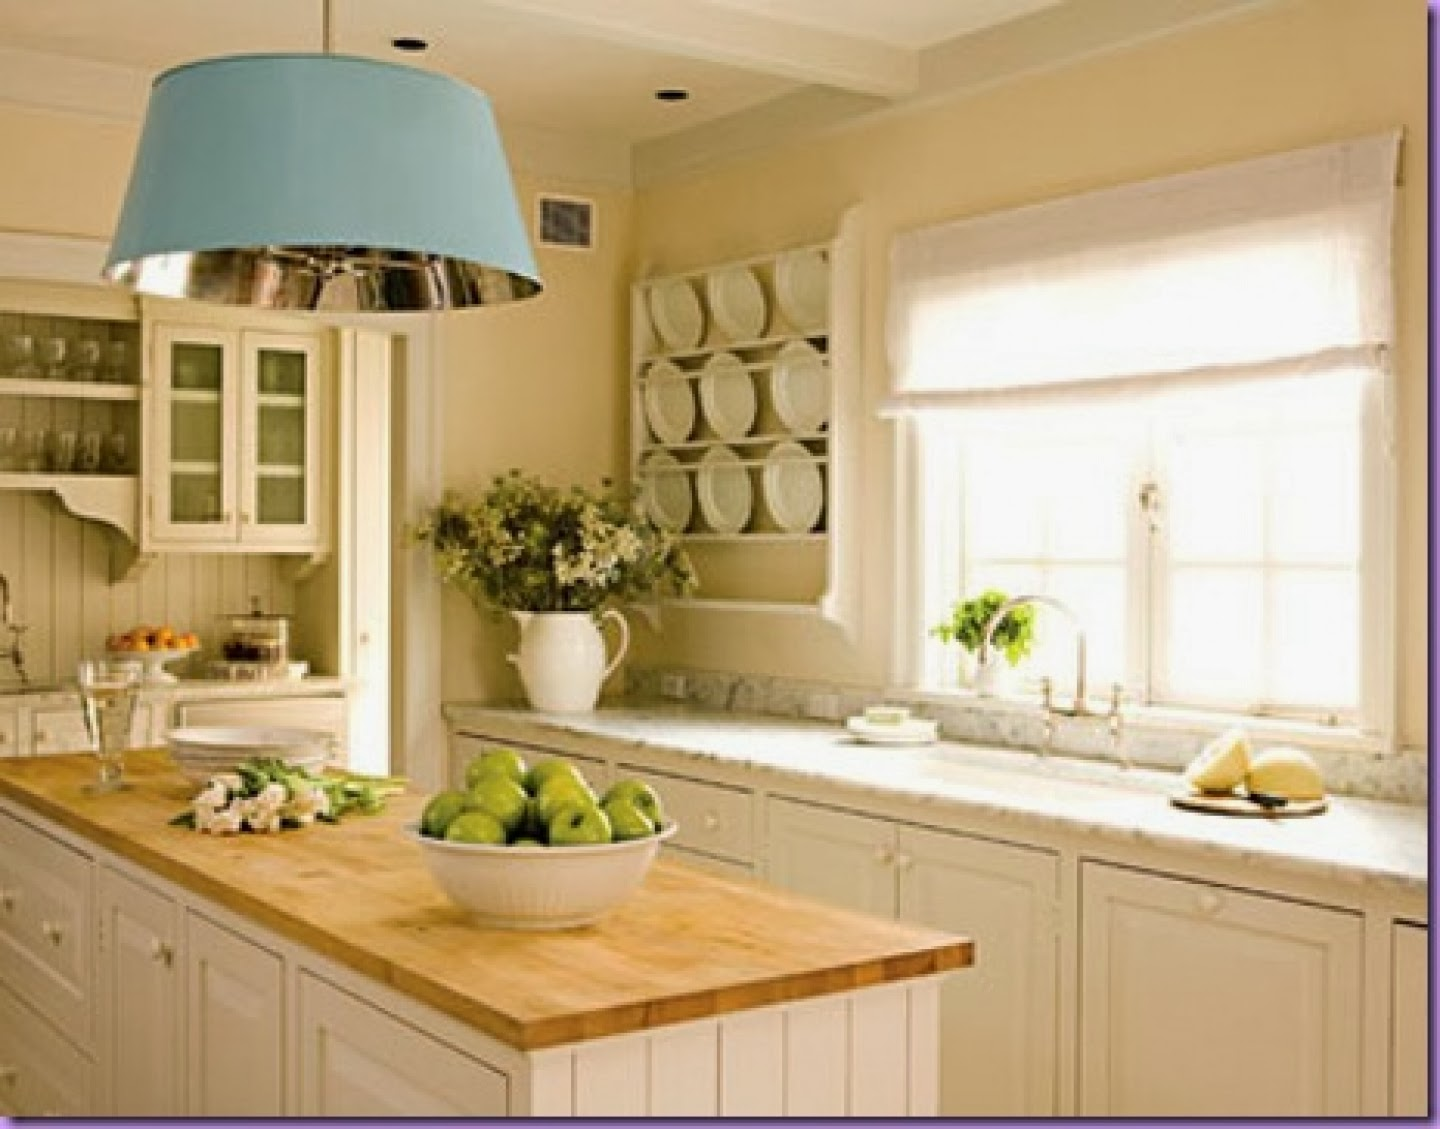 Simple Kitchen Arrangement simple kitchen designs | kitchen design in simple kitchen designs